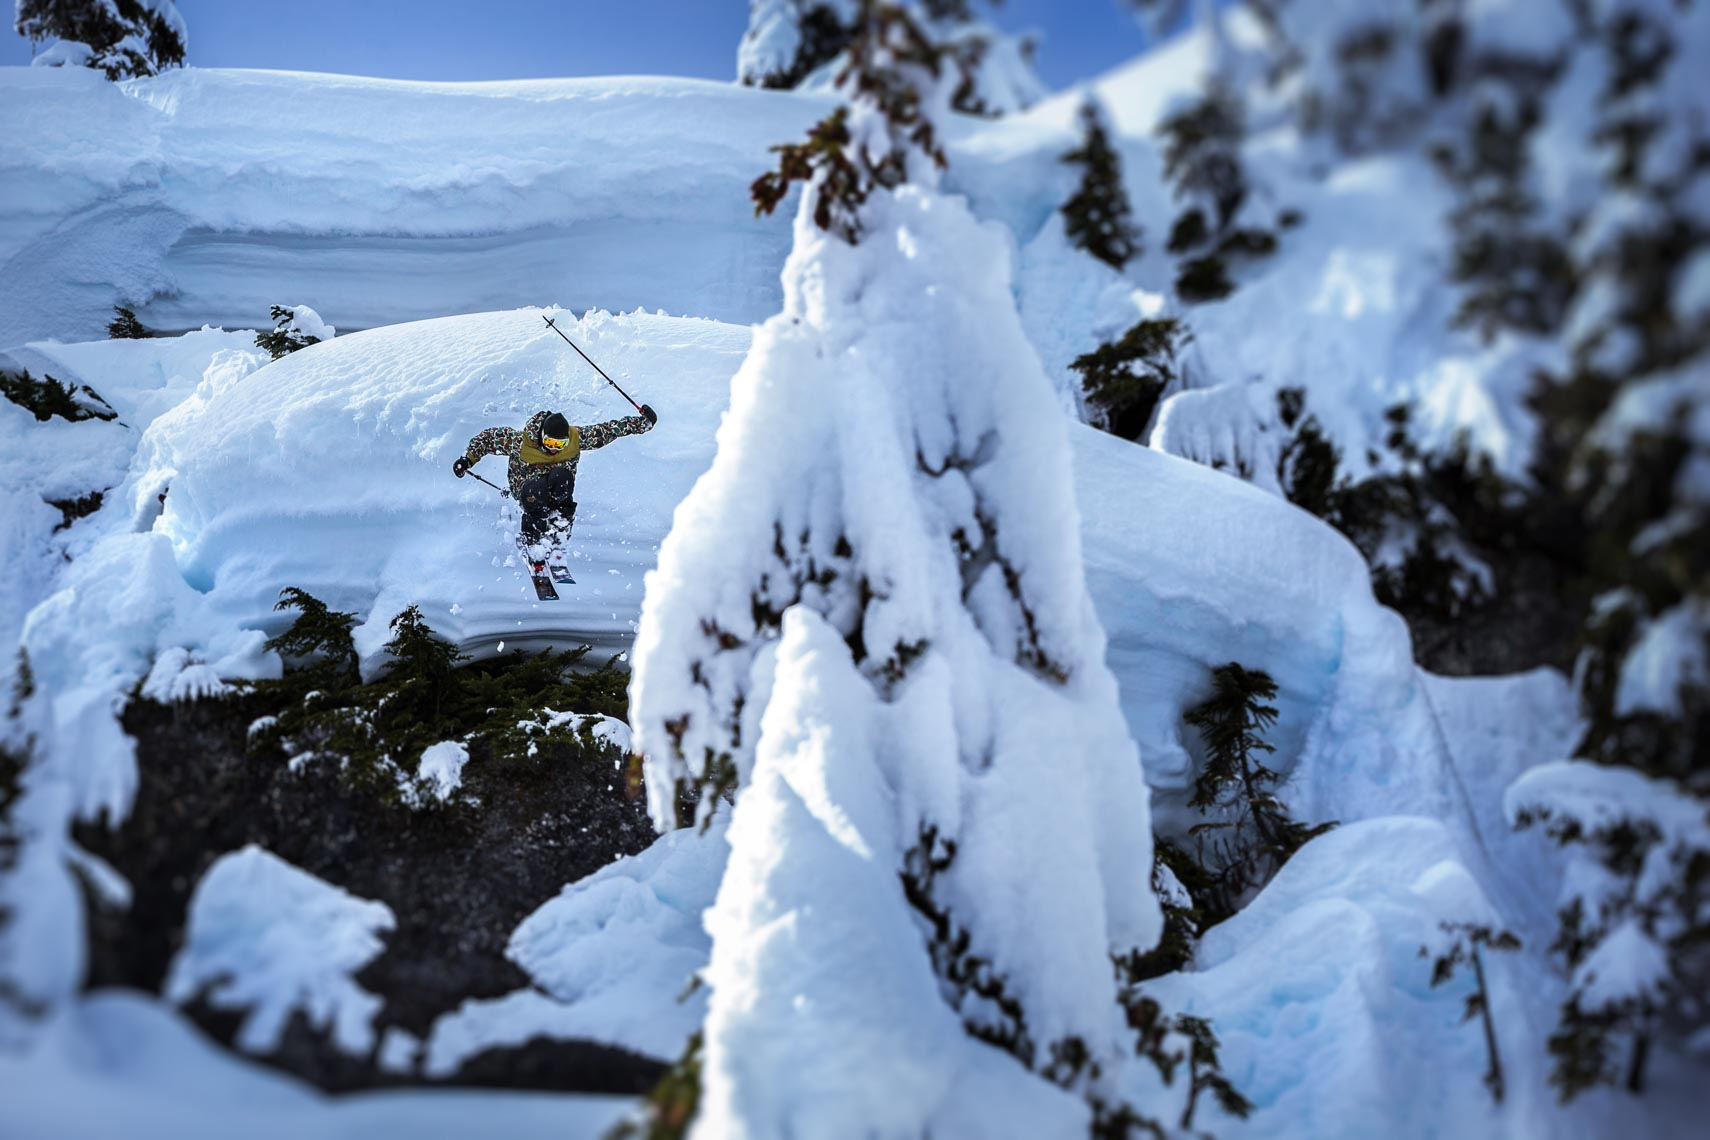 Pro skier drops in Whistler BC Canada shot by ski photographer.